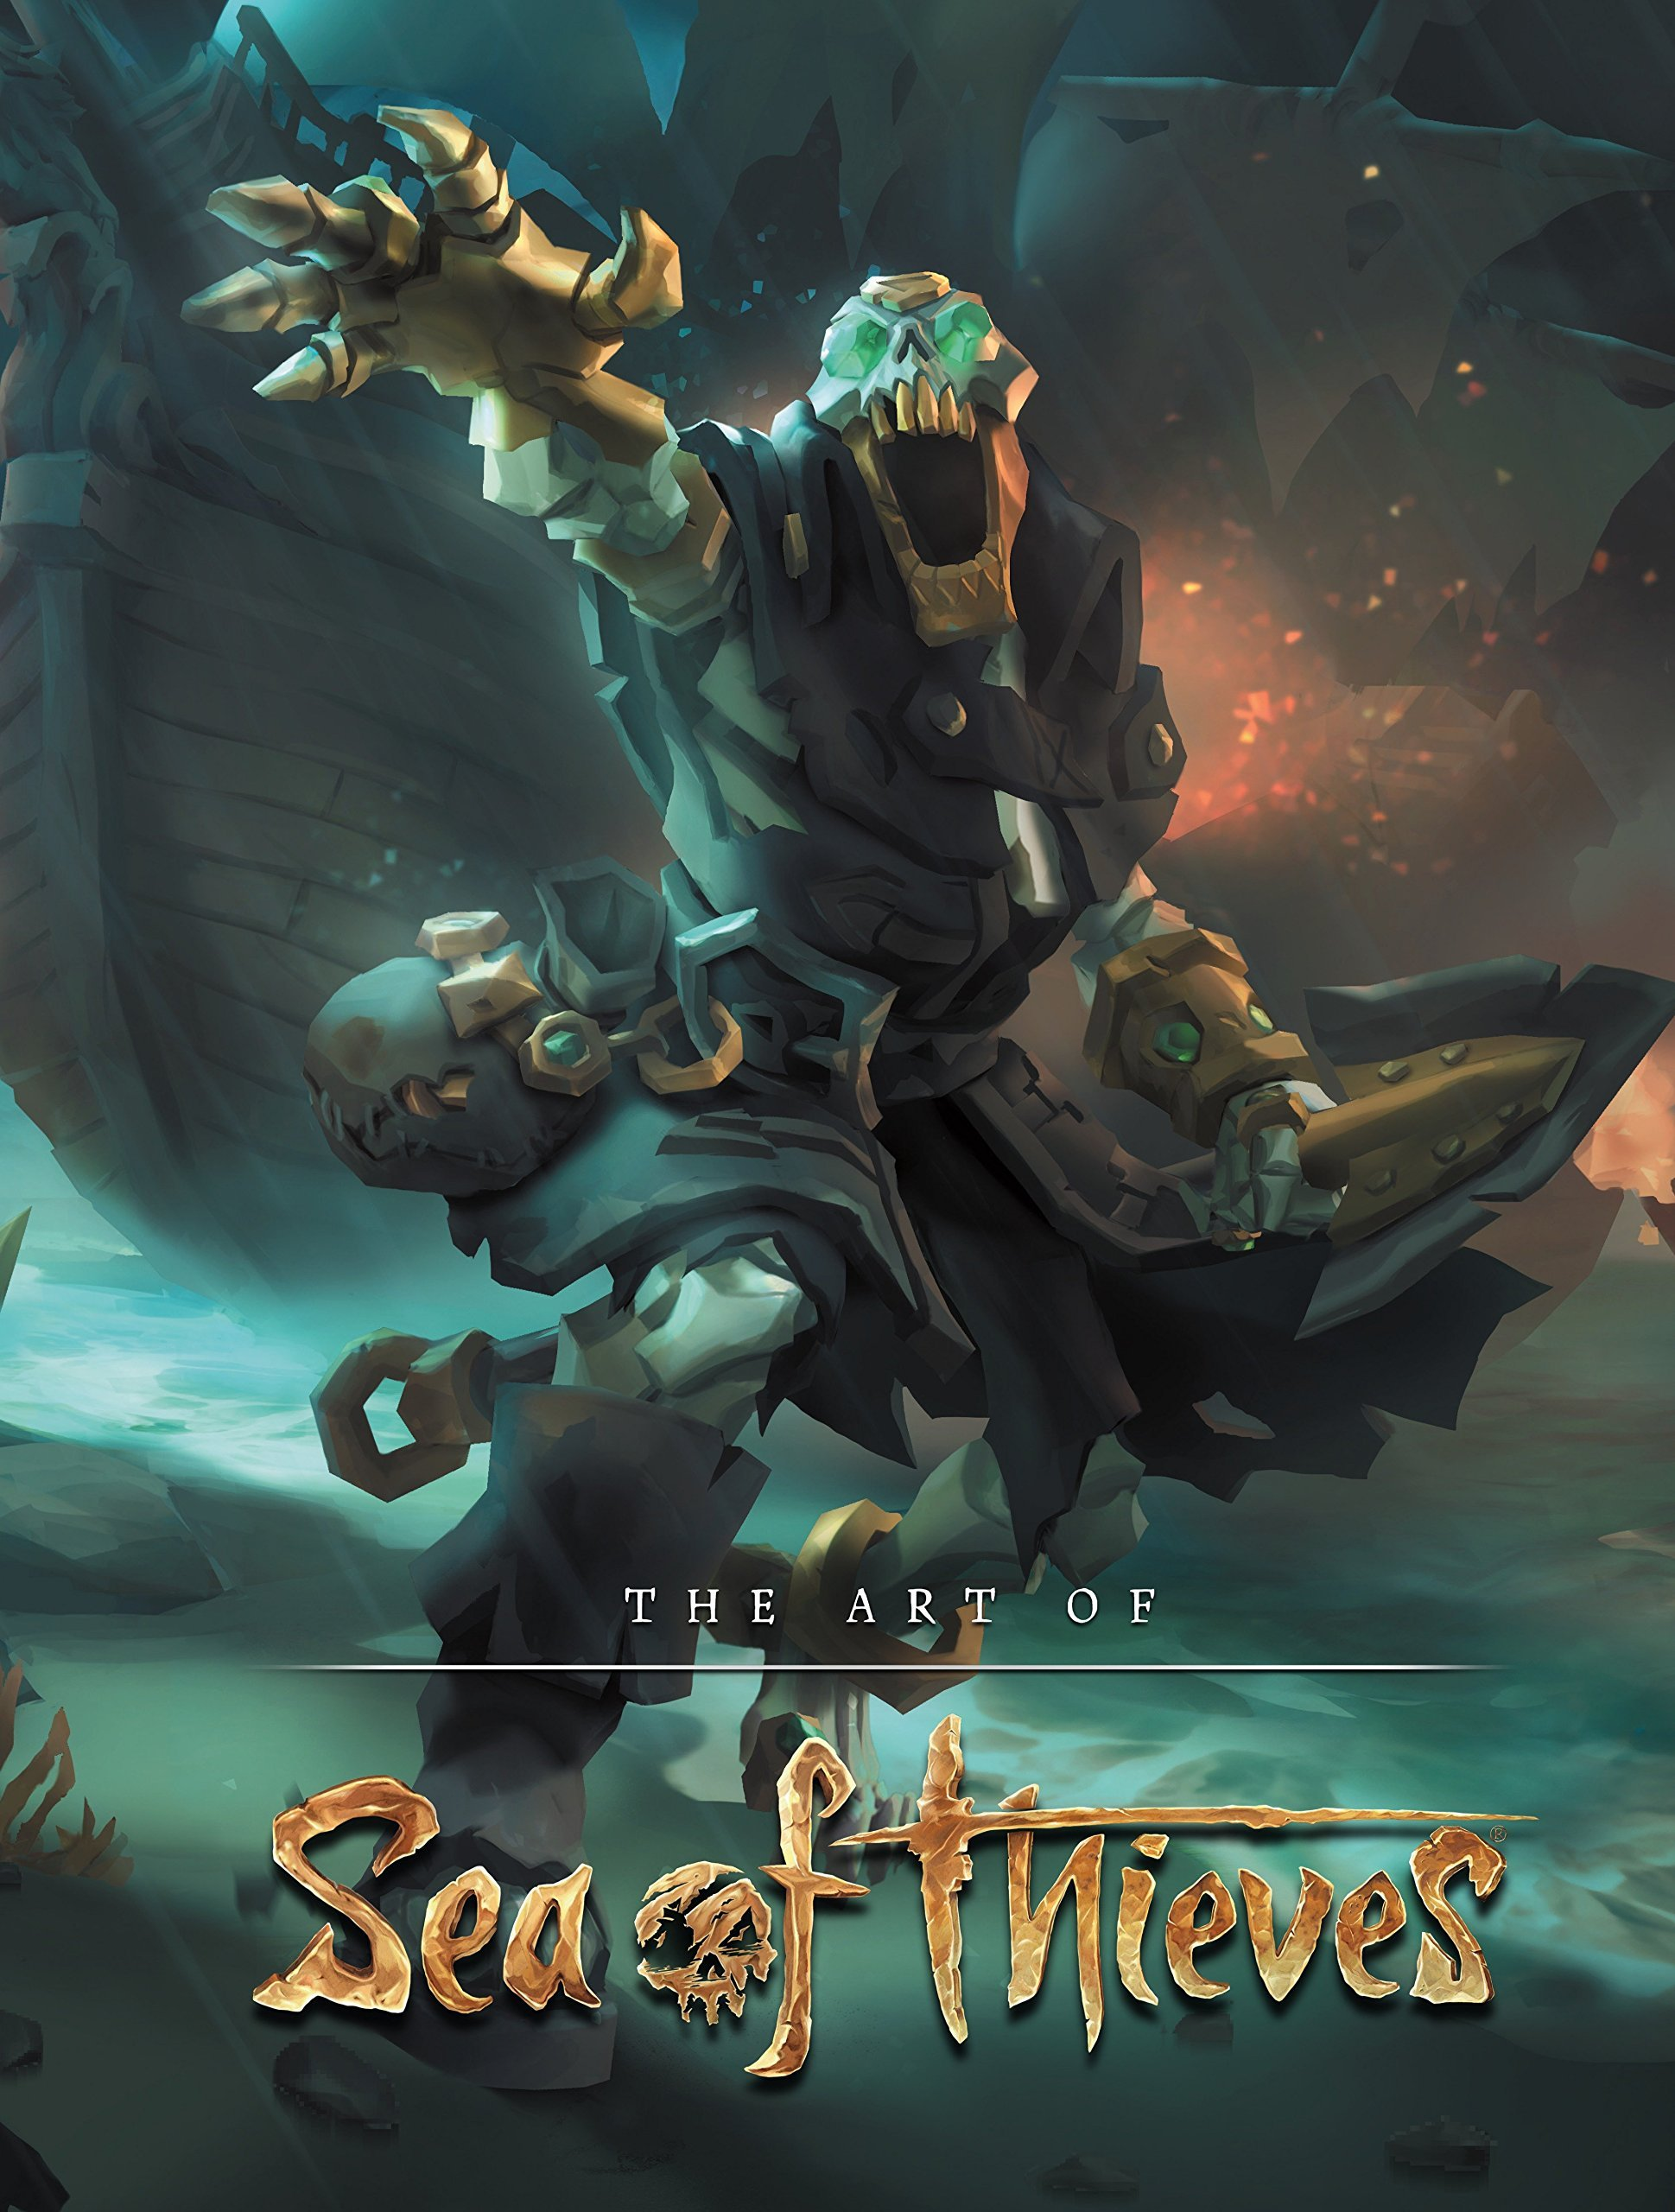 Sea of Thieves - The Art of Sea of Thieves